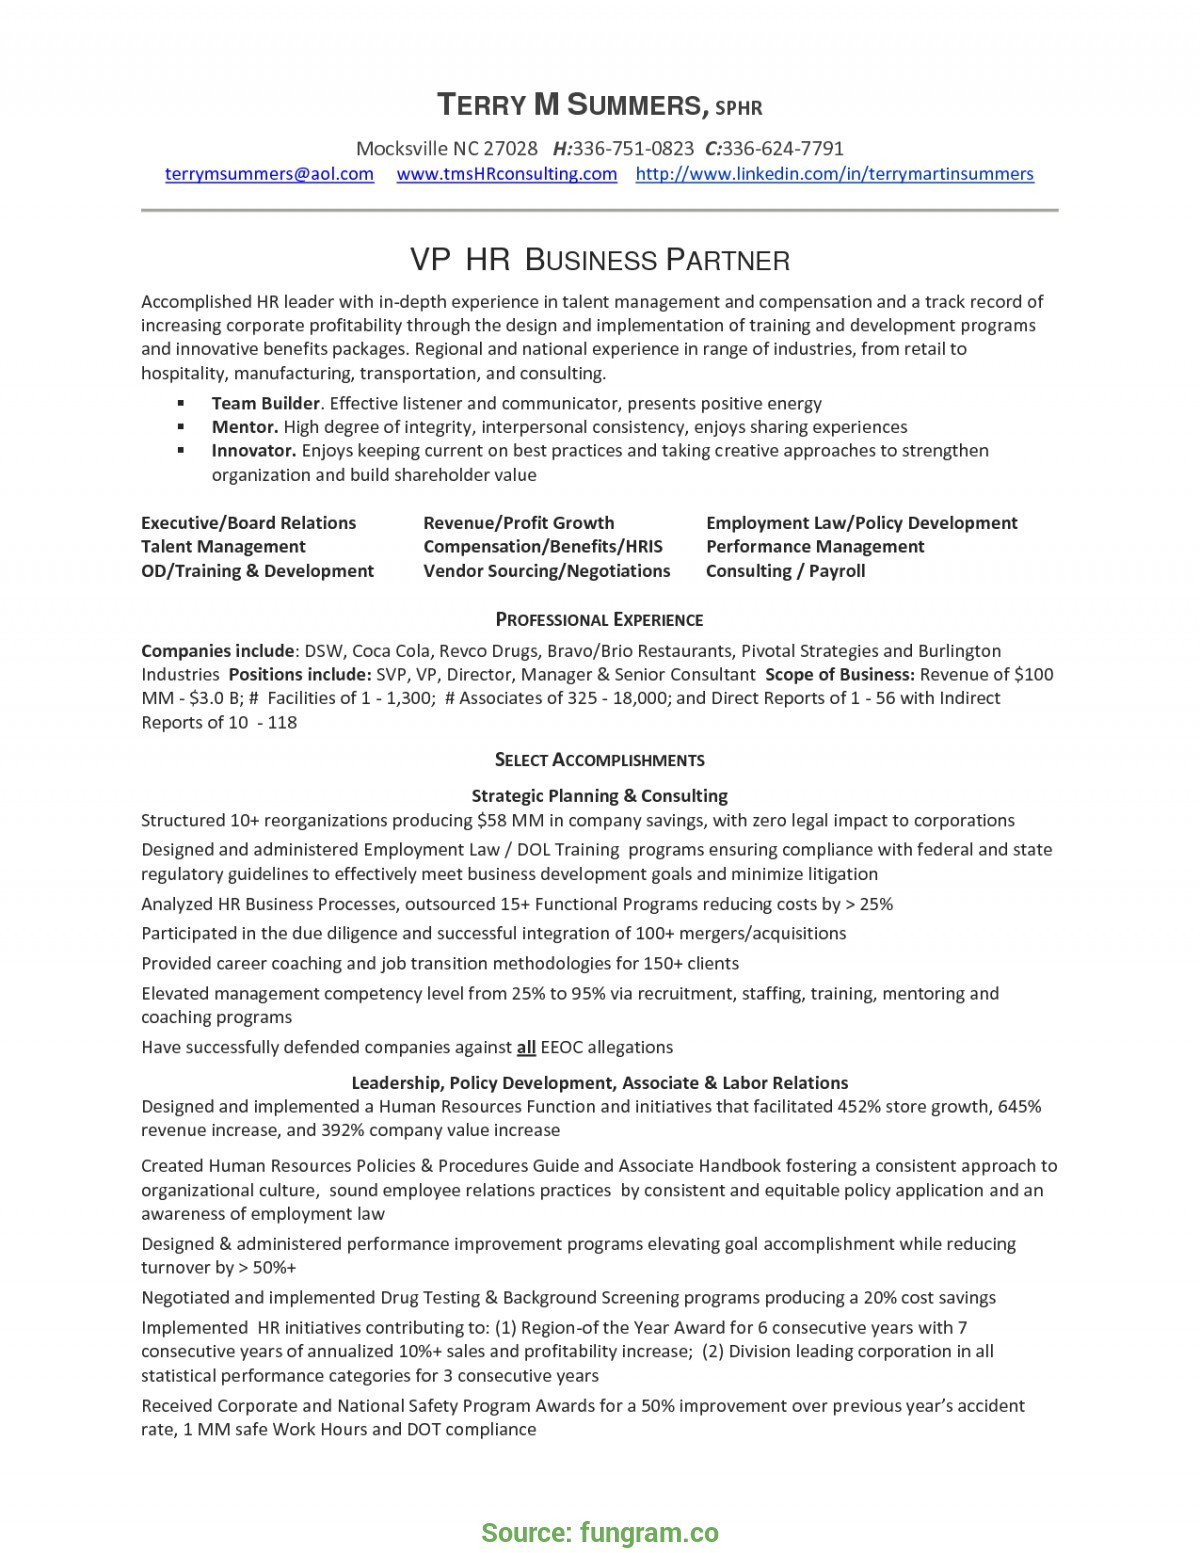 Social Media Manager Resume - social Media Manager Resume New format Resume Examples Inspirational